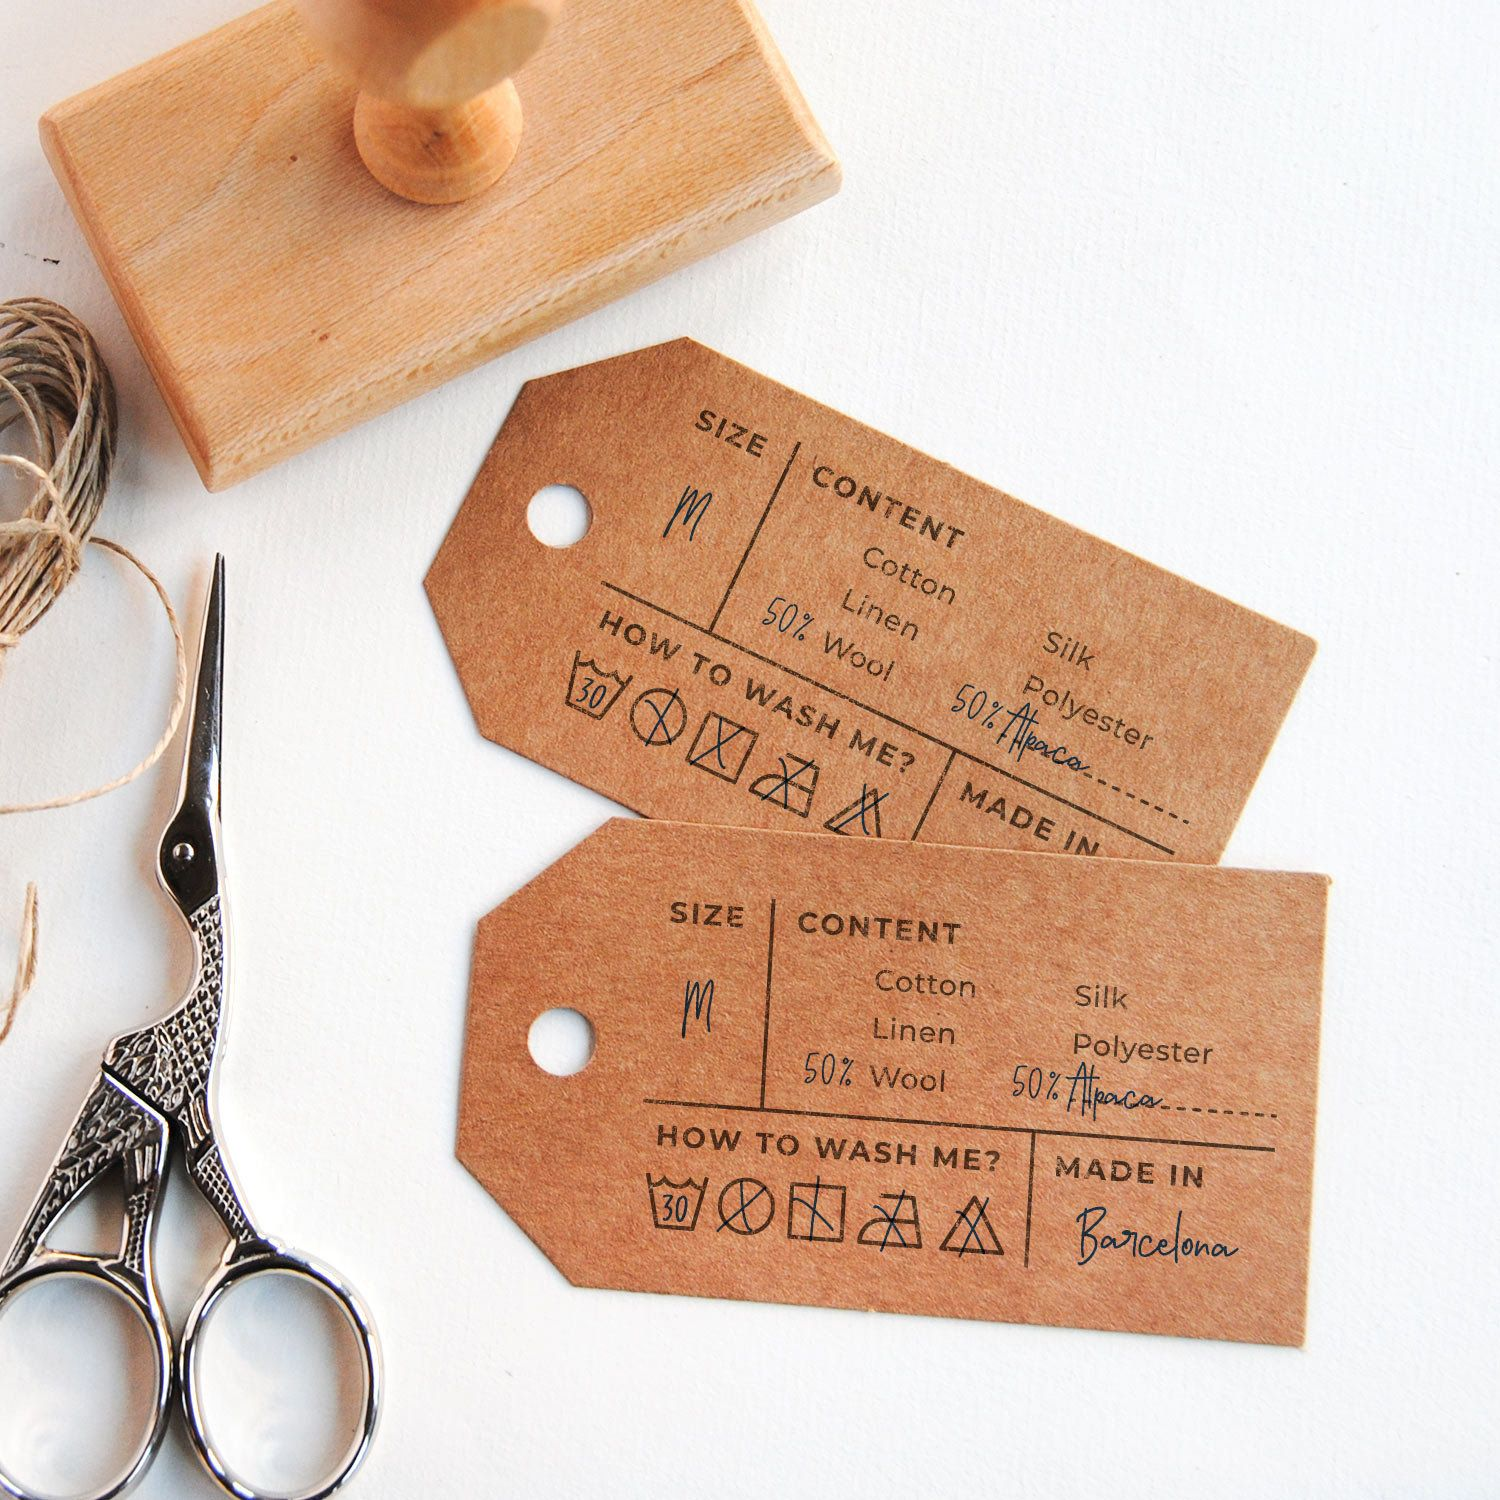 Stamp For Garment Tags With Fiber Content And Care Instructions Size Clothing Label Stamp Fabric Composition And Size Stamp For Diy Labels Diy Labels Business Stamps Clothing Labels Design